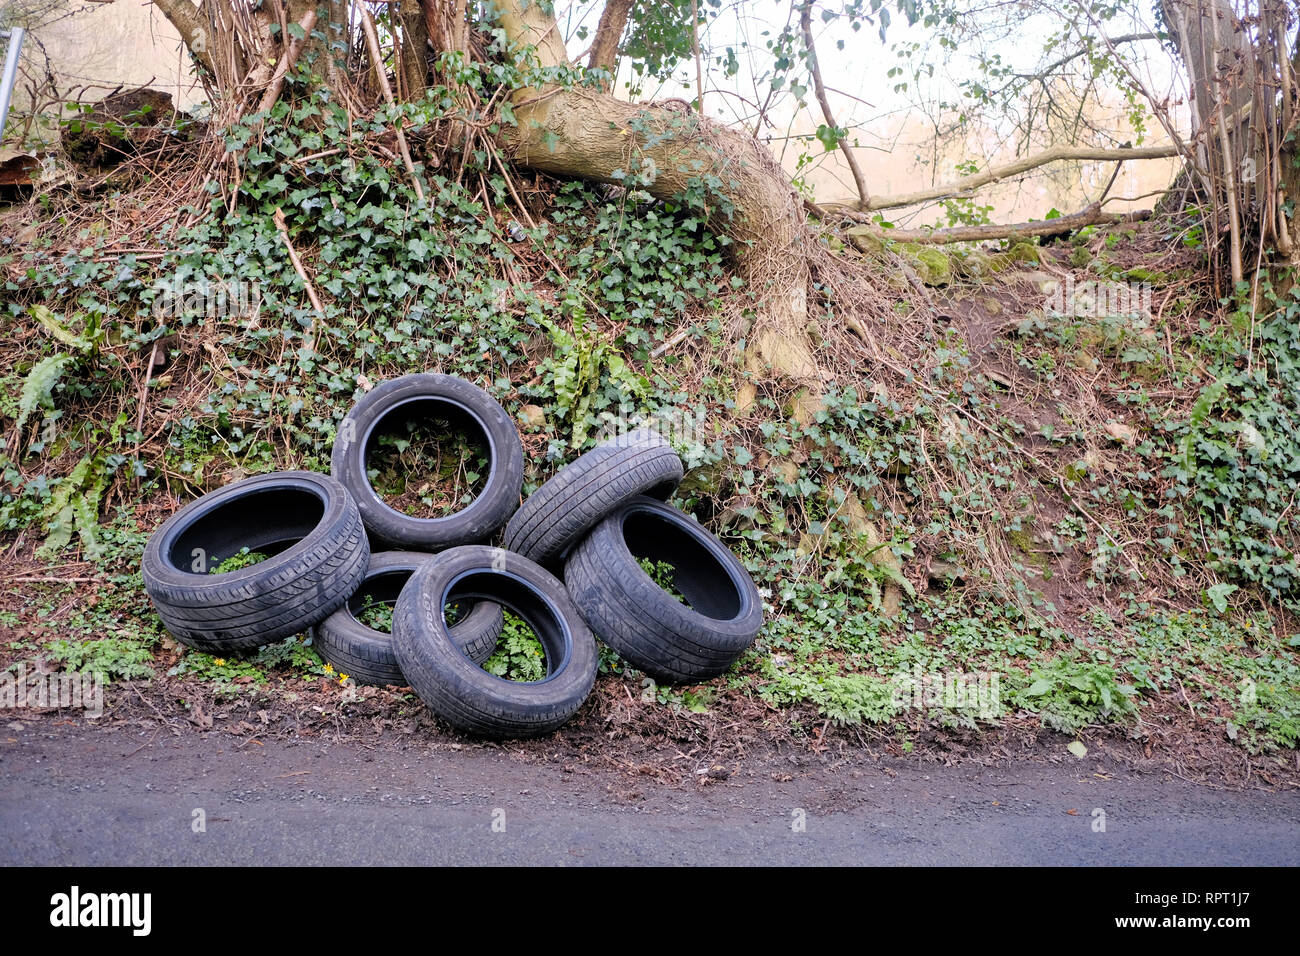 A pile of discarded, car tyres, illegally fly tipped on a country road. this fly tipping has a big impact on environmental damage in the countryside - Stock Image